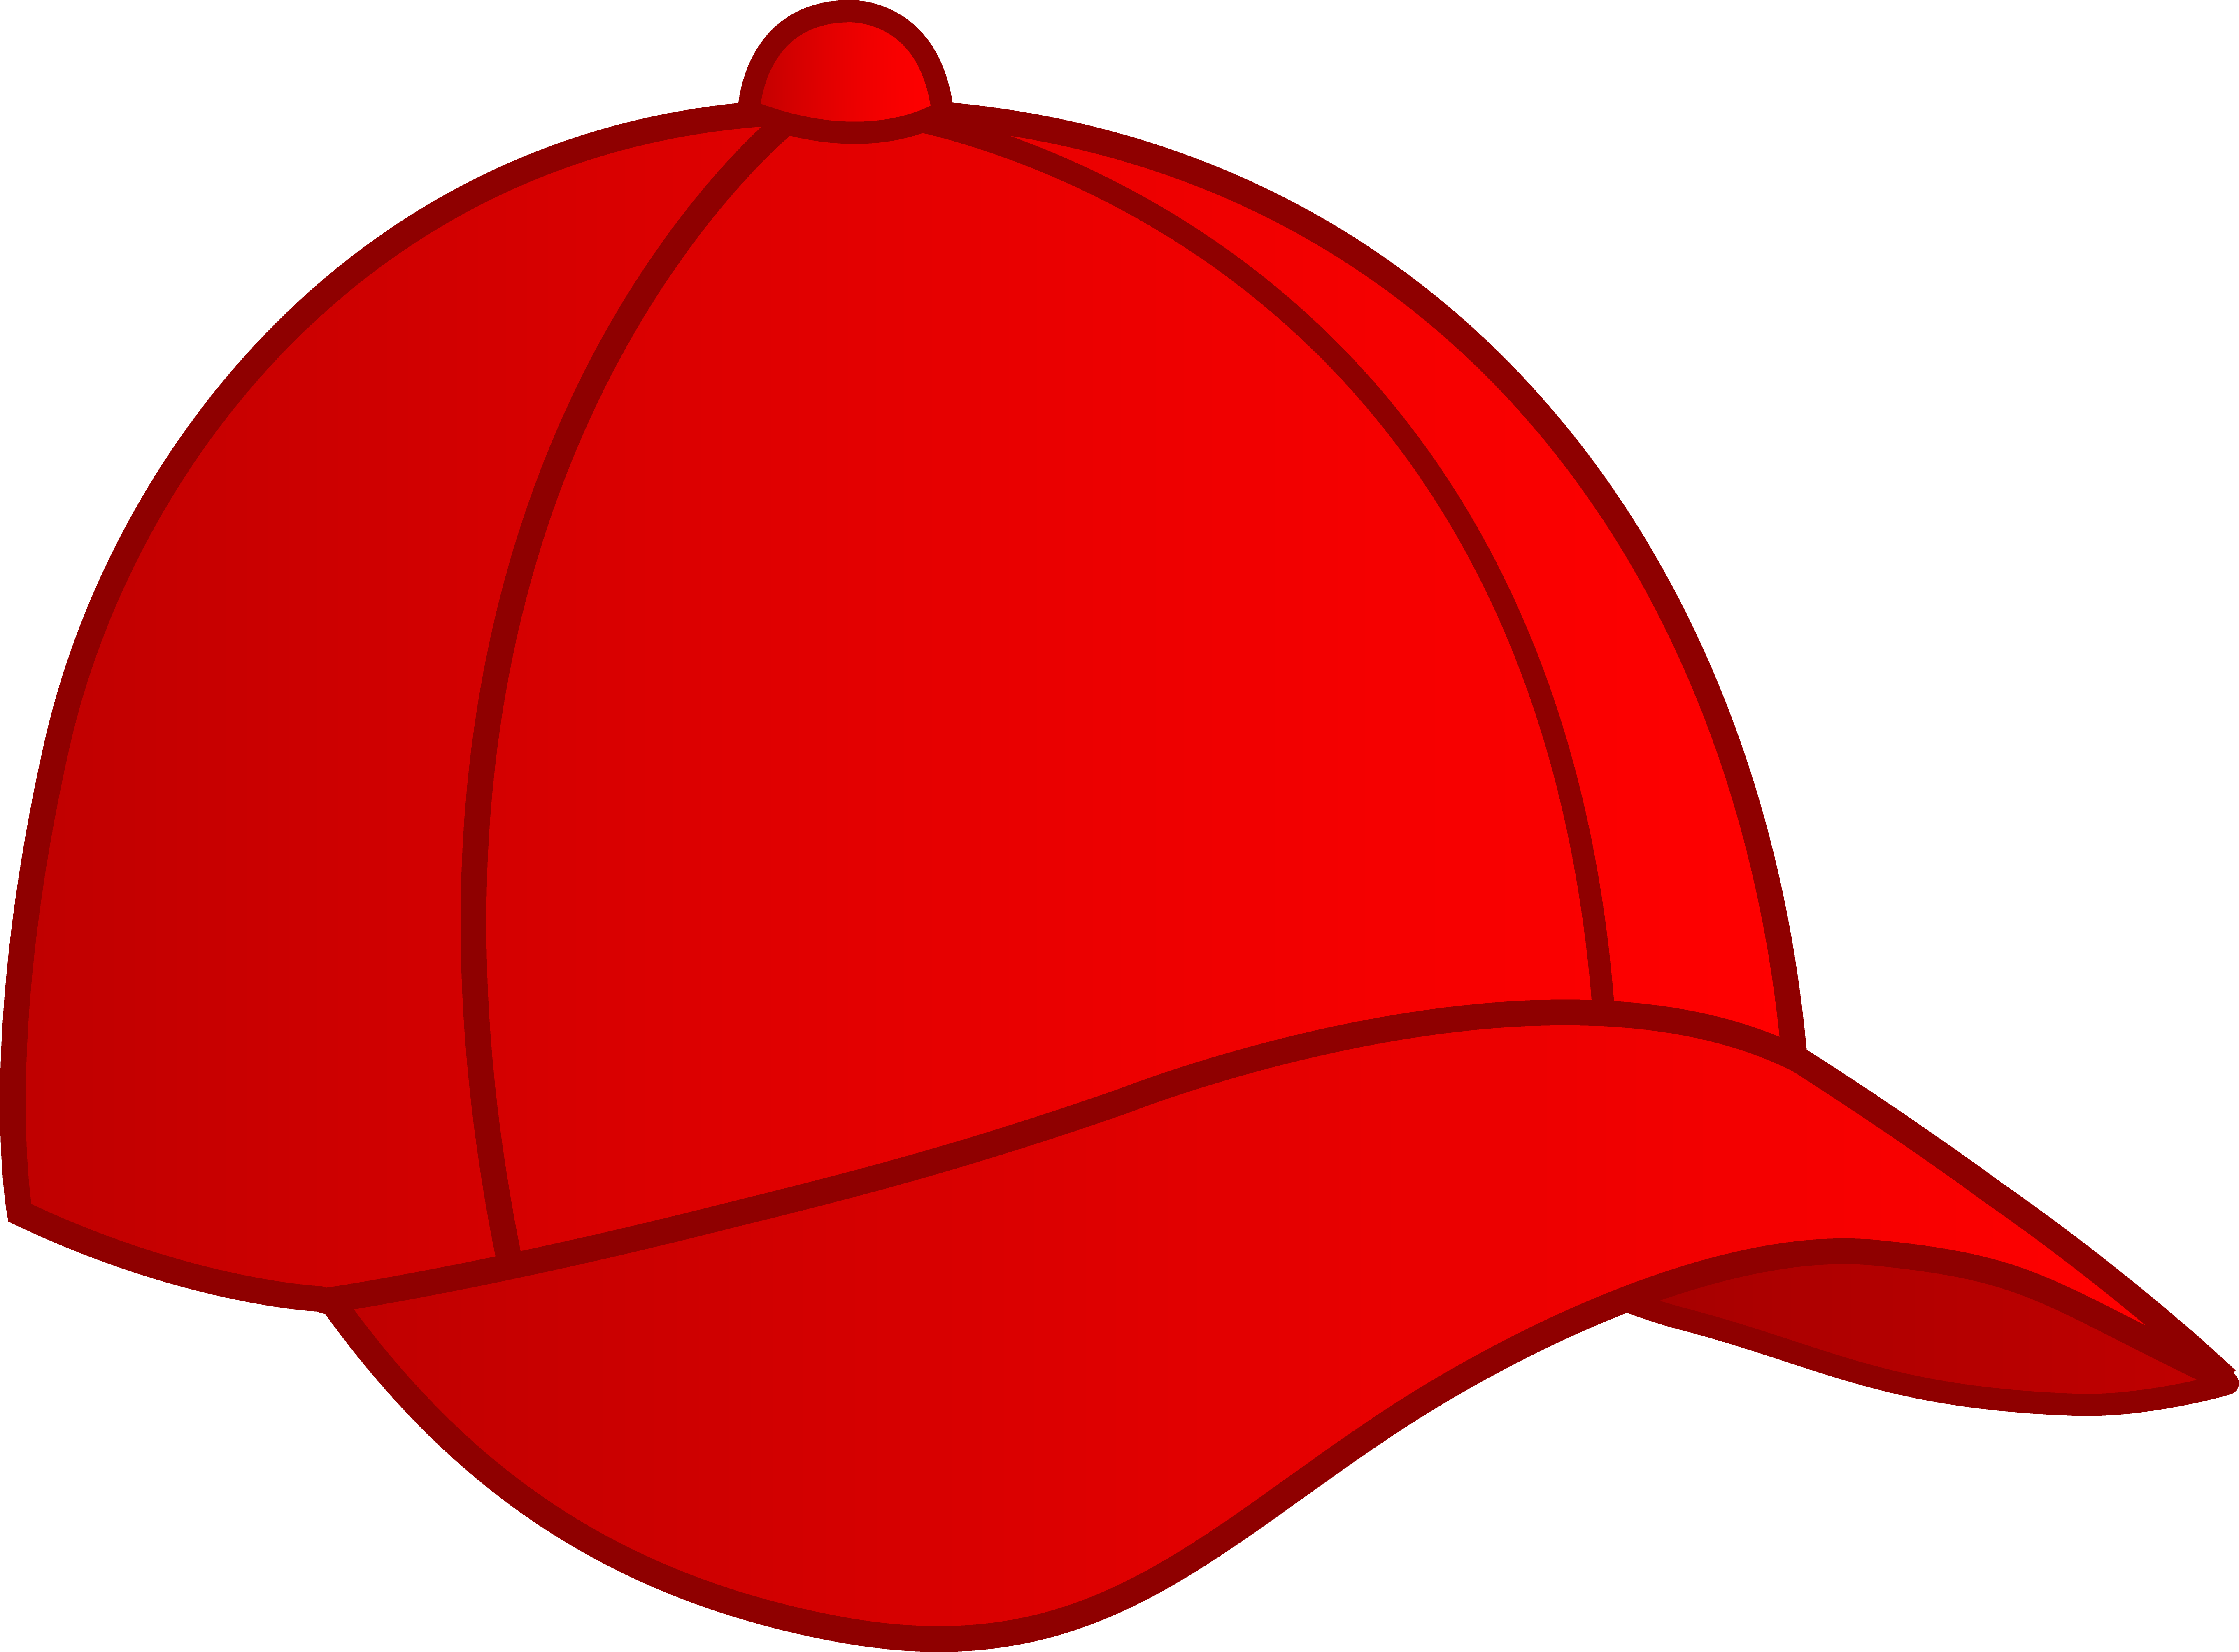 Hat clipart #7, Download drawings